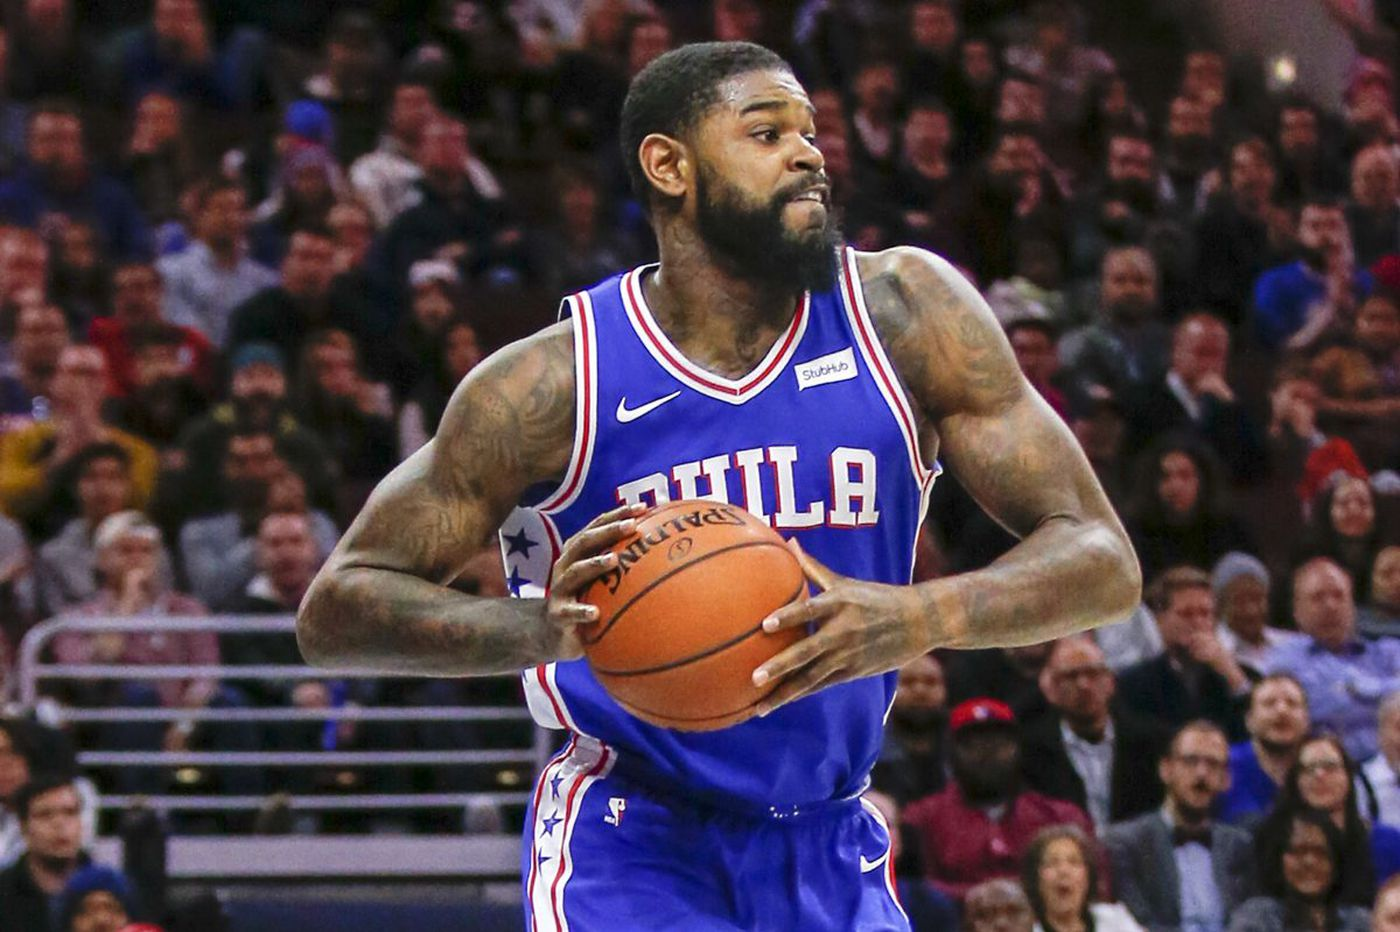 Amir Johnson, starting in place of Joel Embiid, focusing on defense heading into NBA playoffs